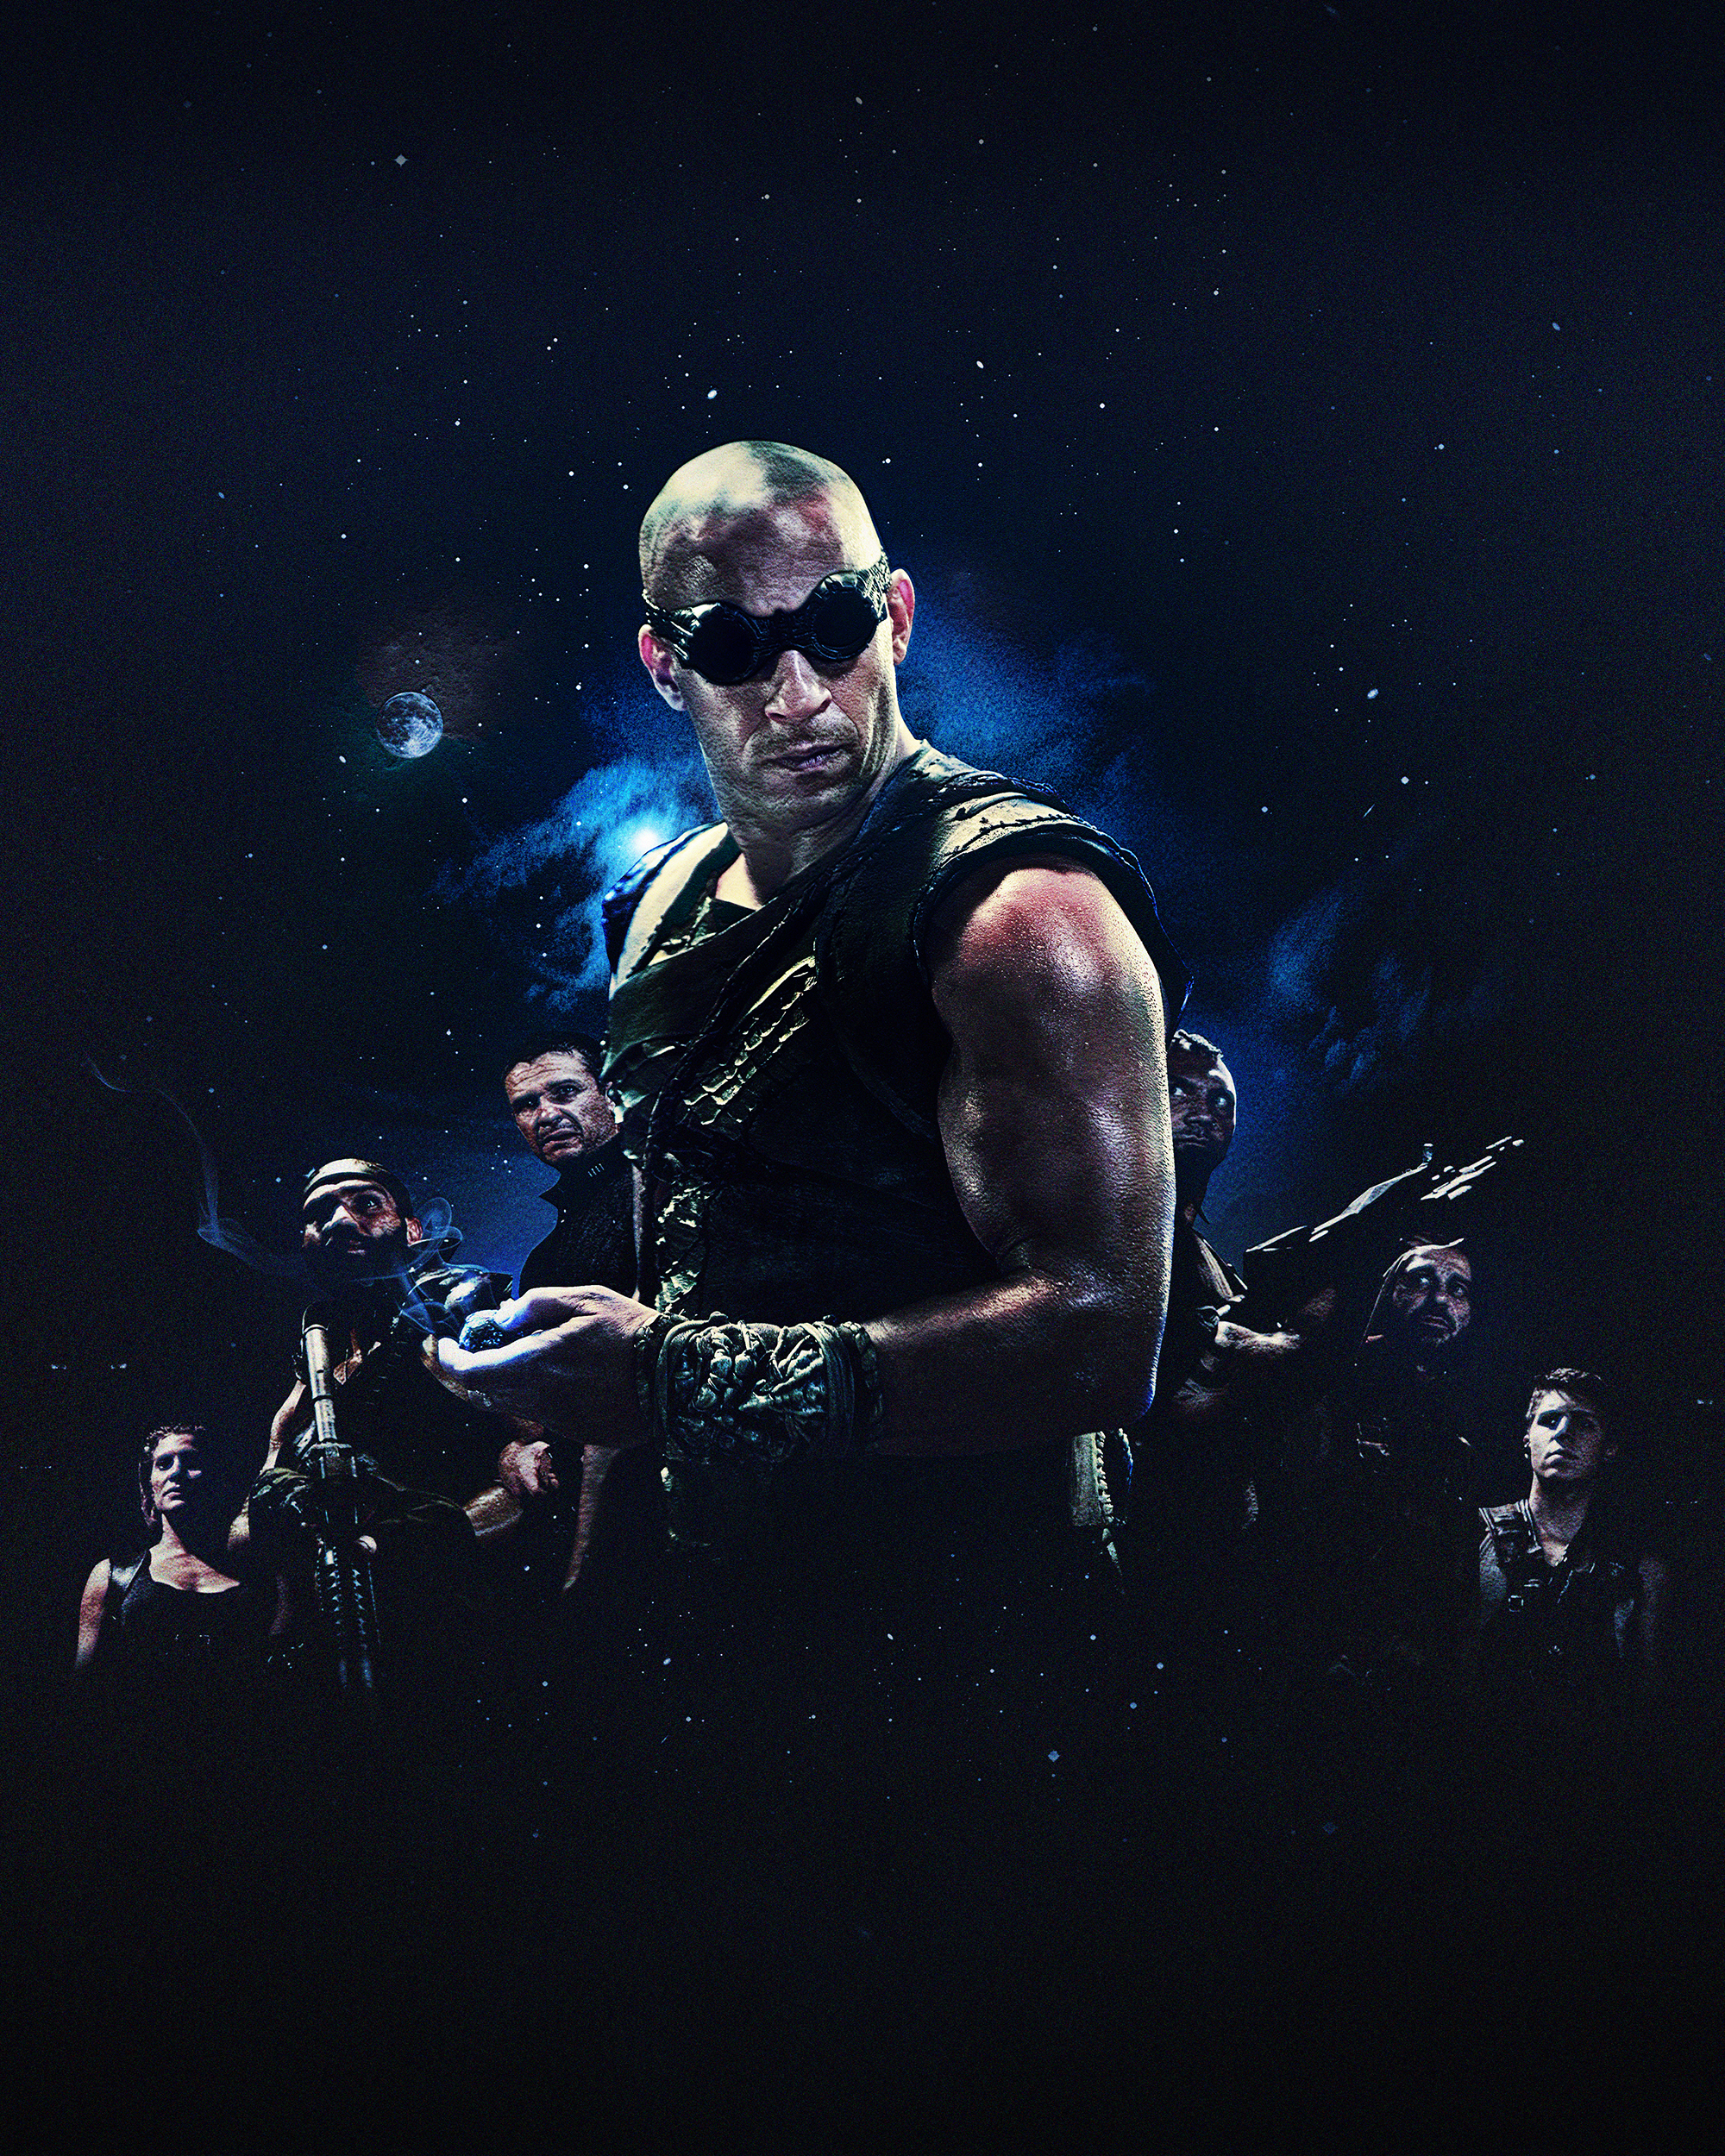 The Riddick Rule The Dark by evolvearte on DeviantArt